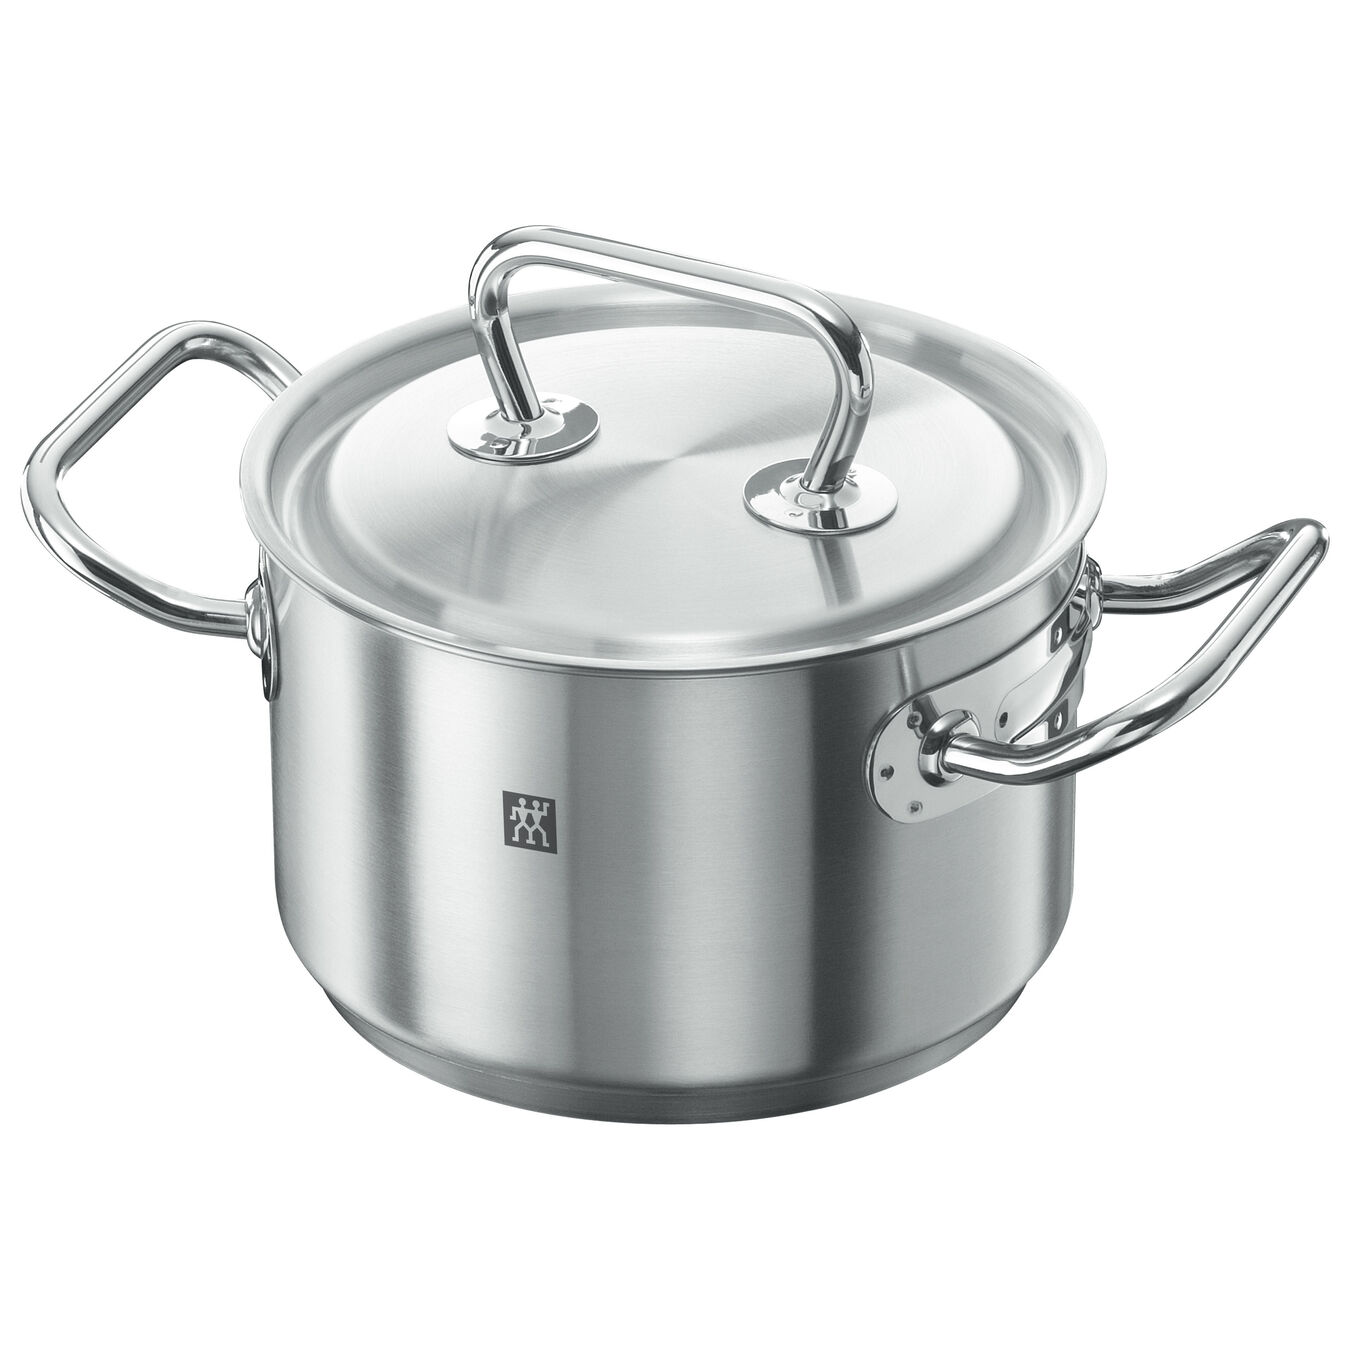 12-pcs 18/10 Stainless Steel Set de casseroles et de poêles,,large 3